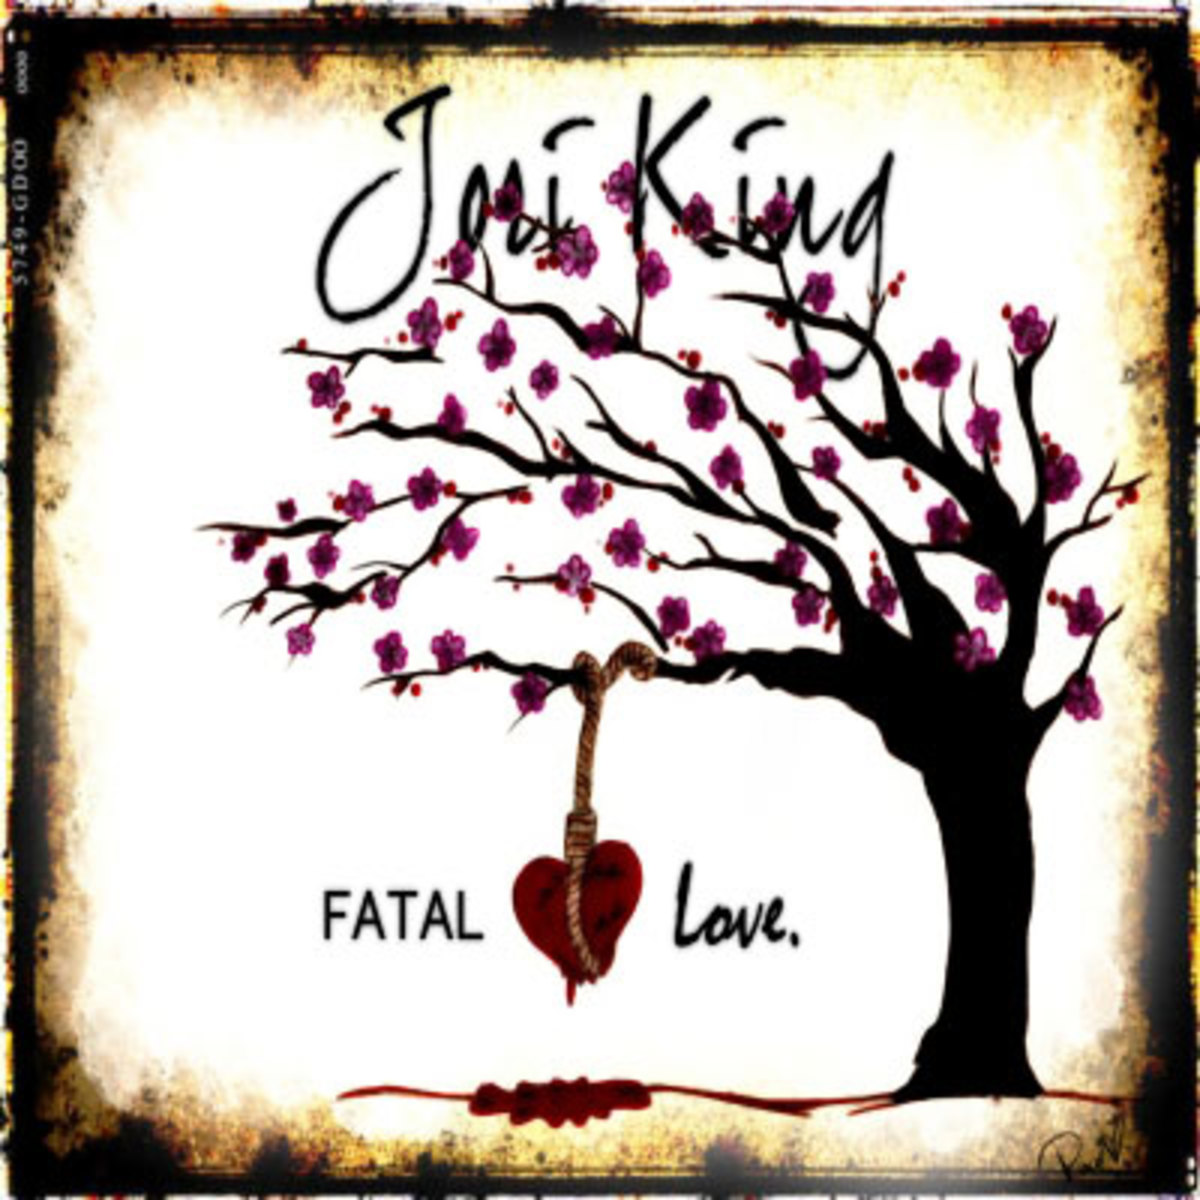 joriking-fatallove.jpg